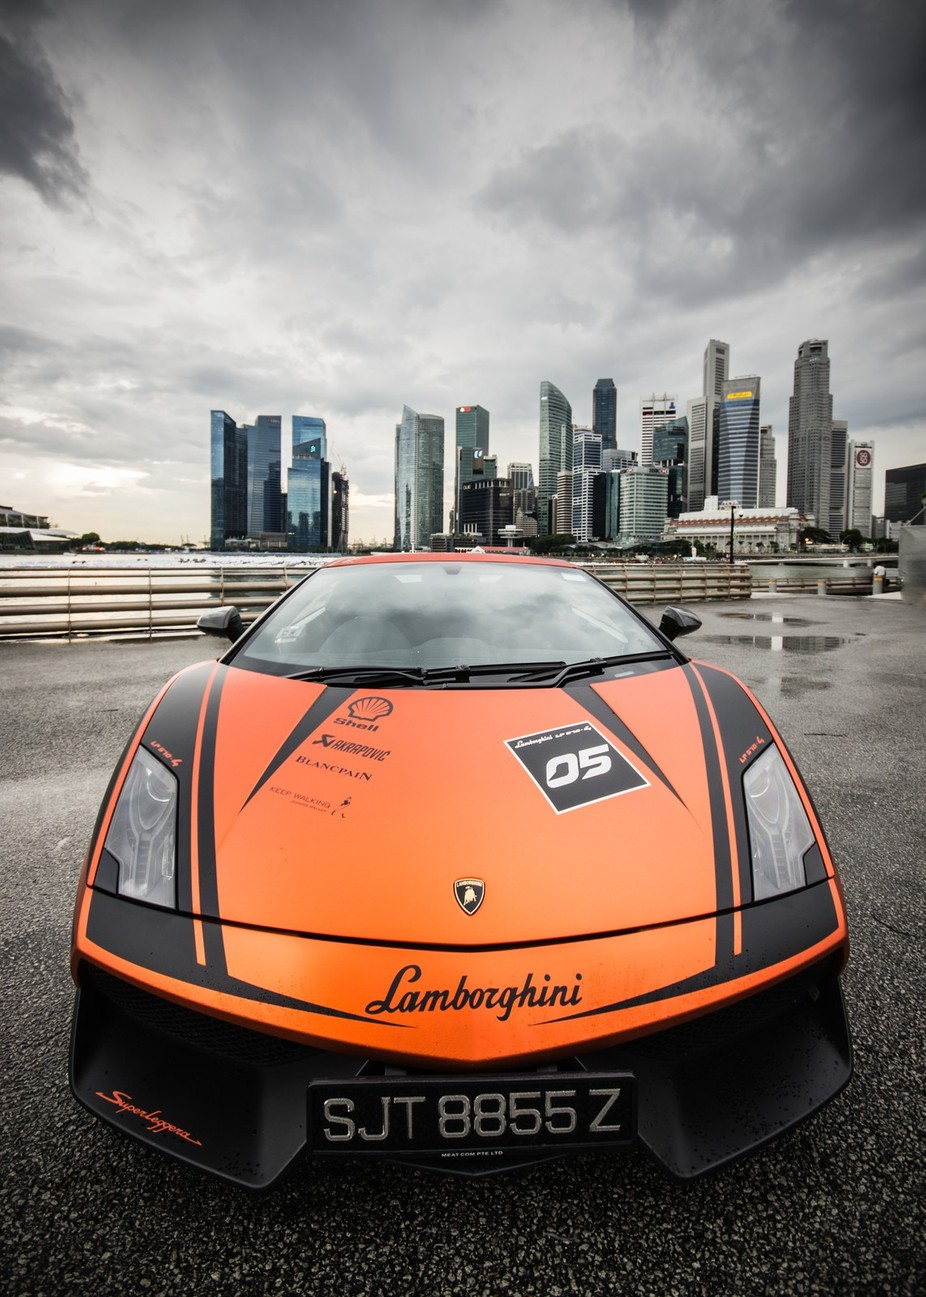 Lambo by MikeW - My Favorite Car Photo Contest